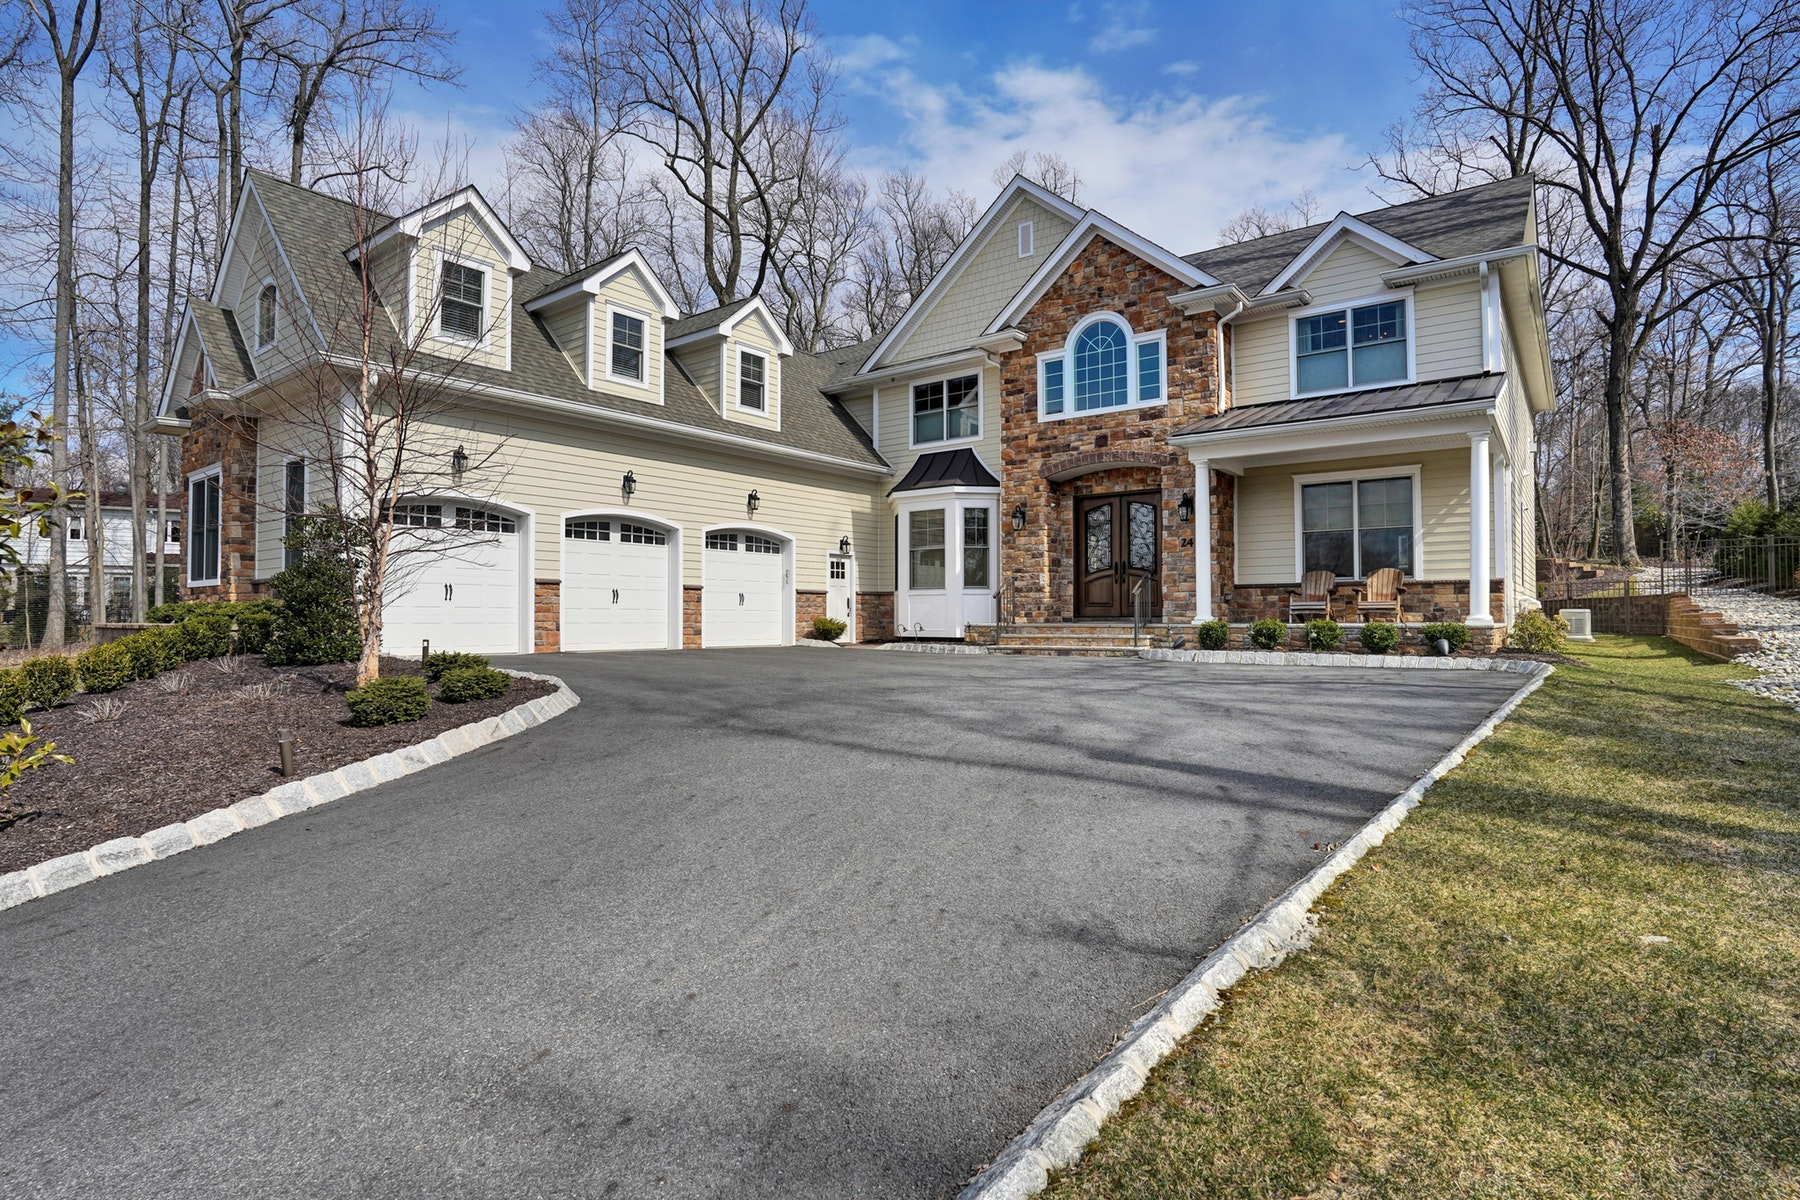 Single Family Home for Sale at Over 5,500 SQ FT of Luxury 24 Shenandoah Dr, North Caldwell, New Jersey 07006 United States